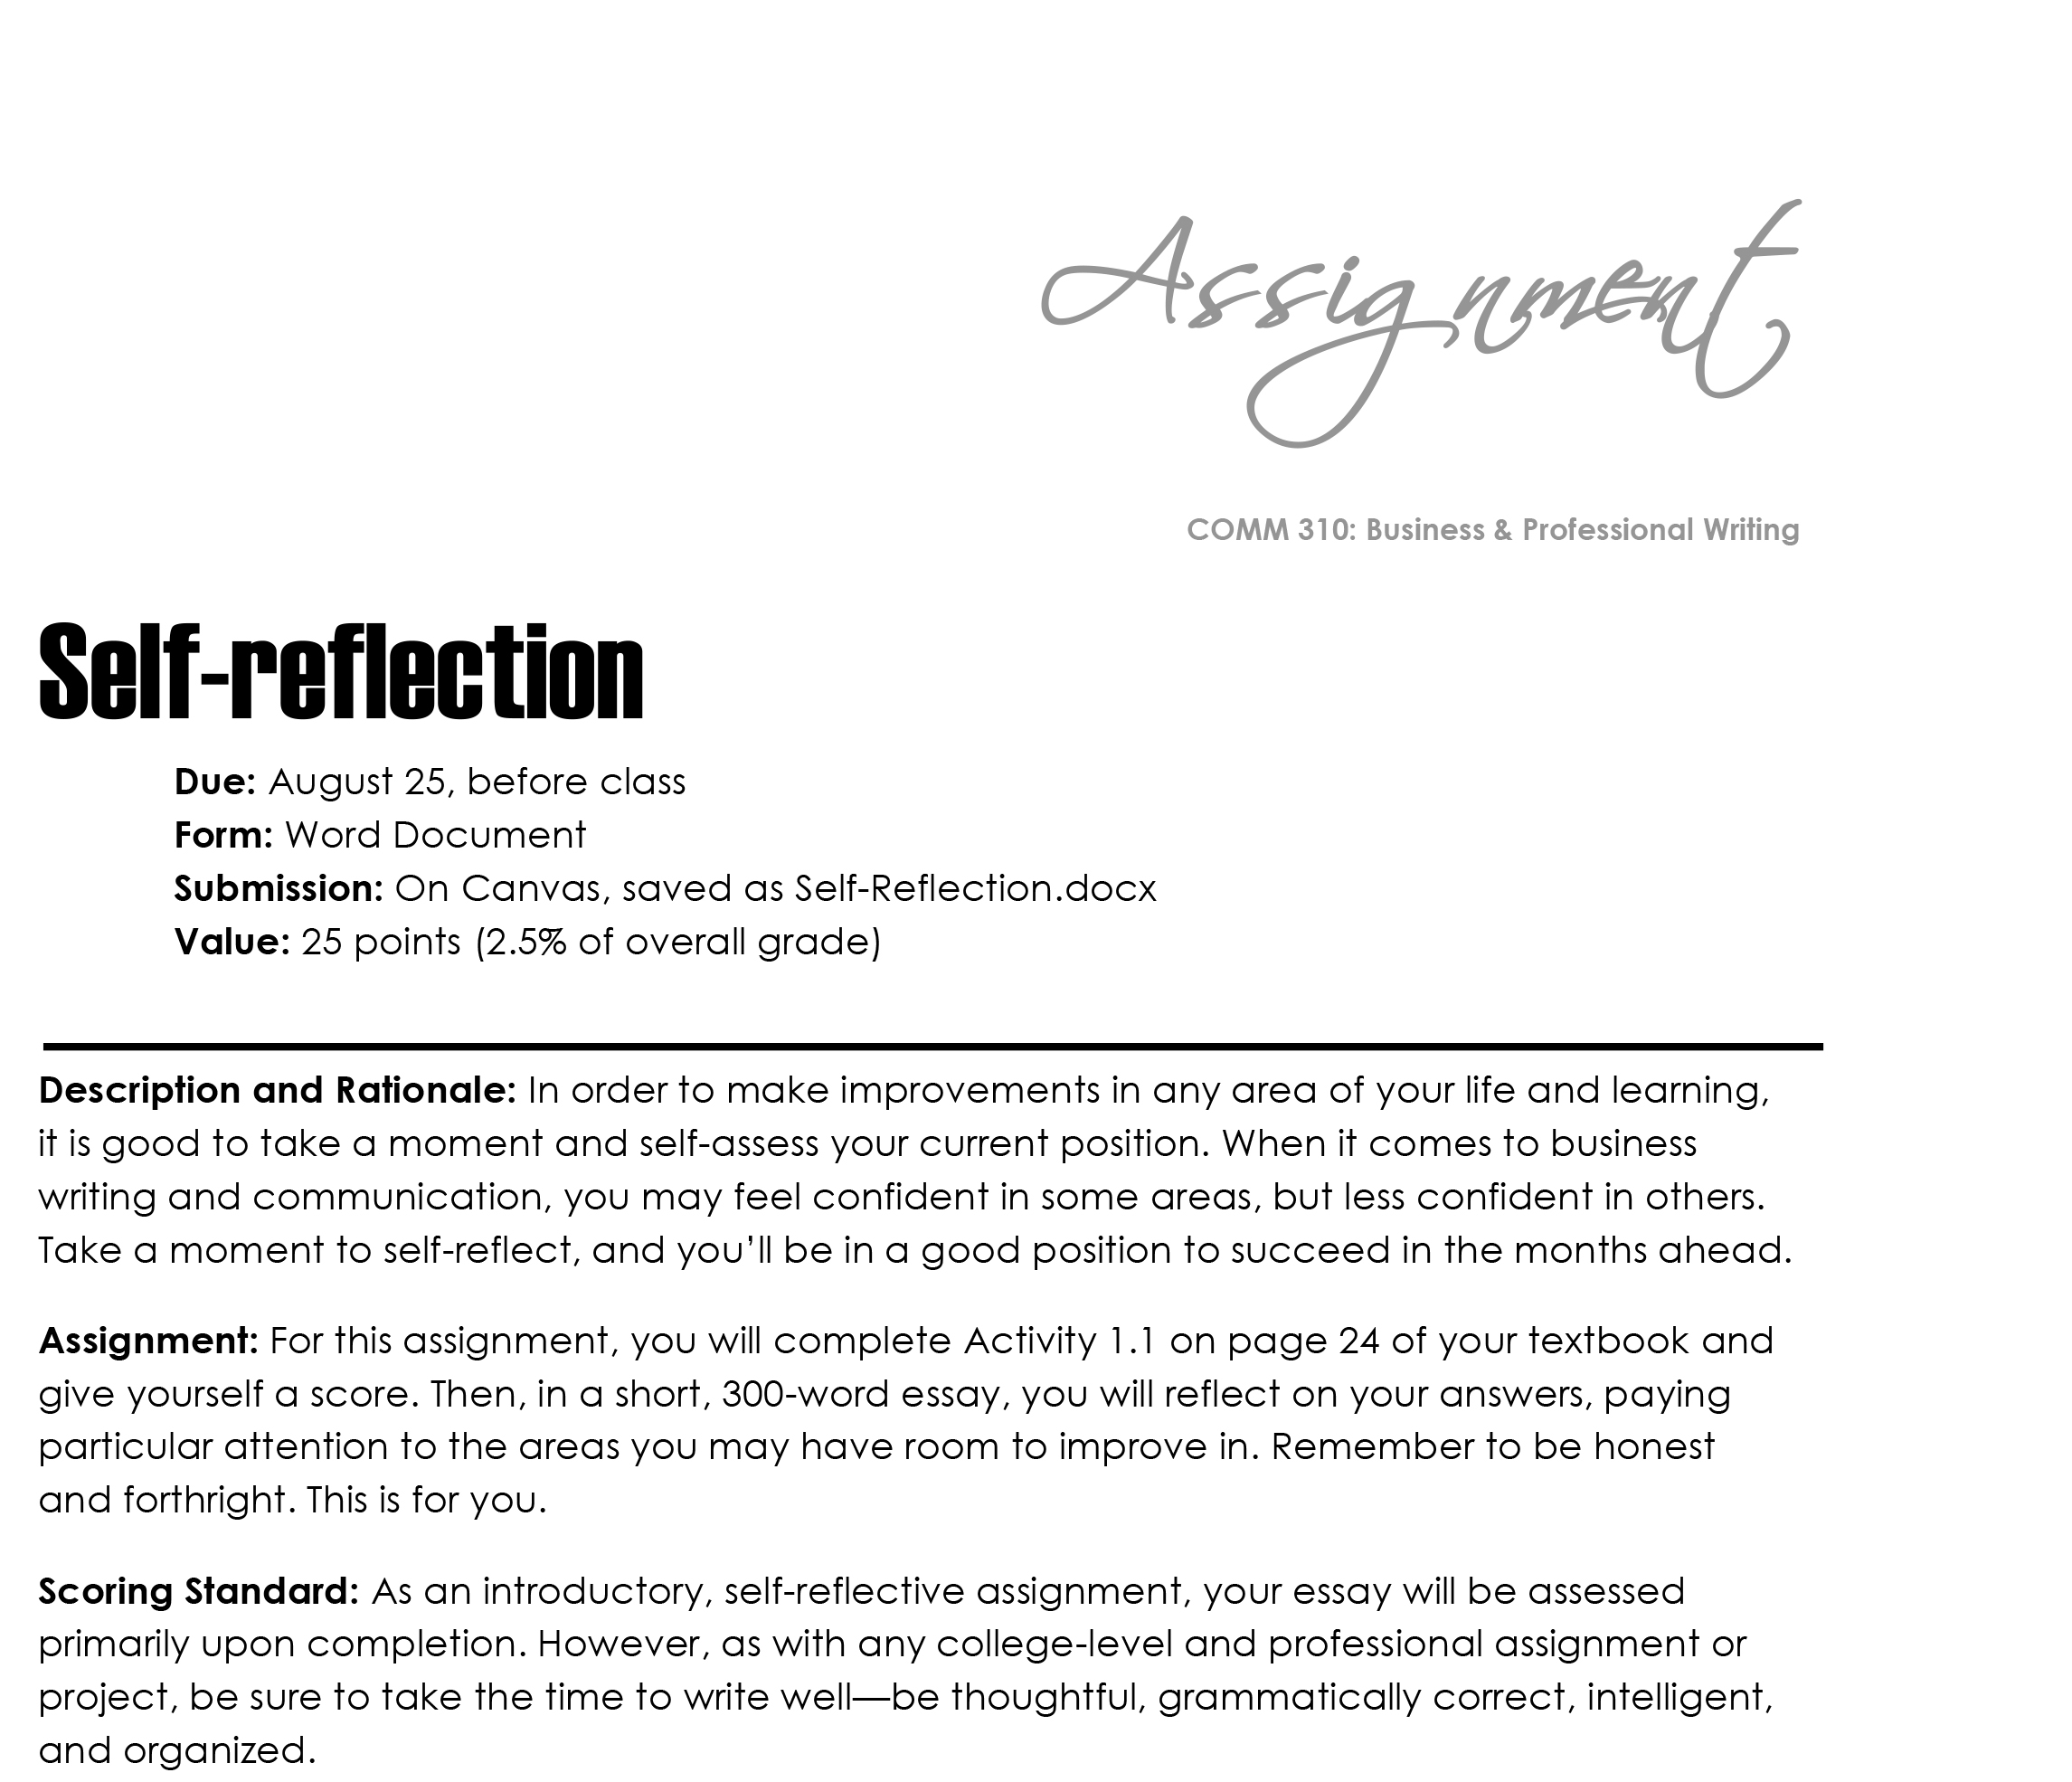 self reflection essay quotes Sandro botticelli primavera essay about myself how to start an introduction for a personal essay essay on poverty wikipedia how to make an essay a speech essay on.